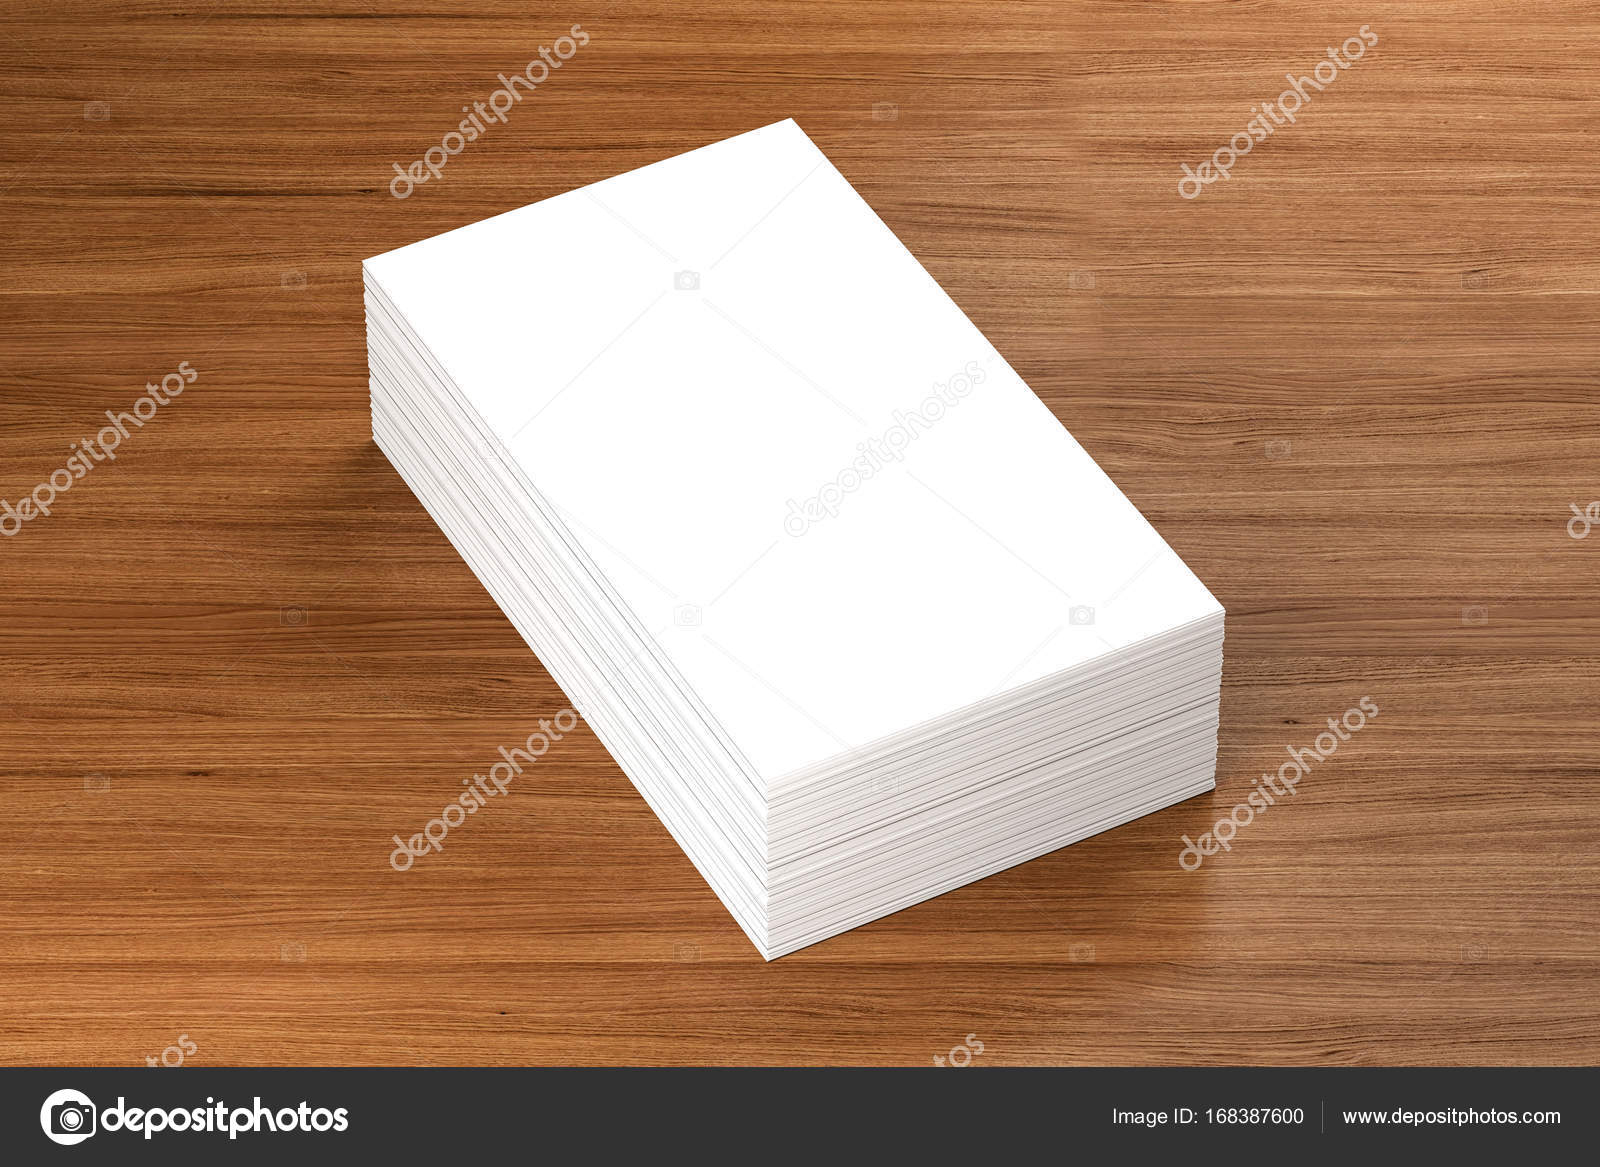 Business cards blank mockup template 3d illustration stock business cards blank mockup template 3d illustration photo by daliborzivotic flashek Images